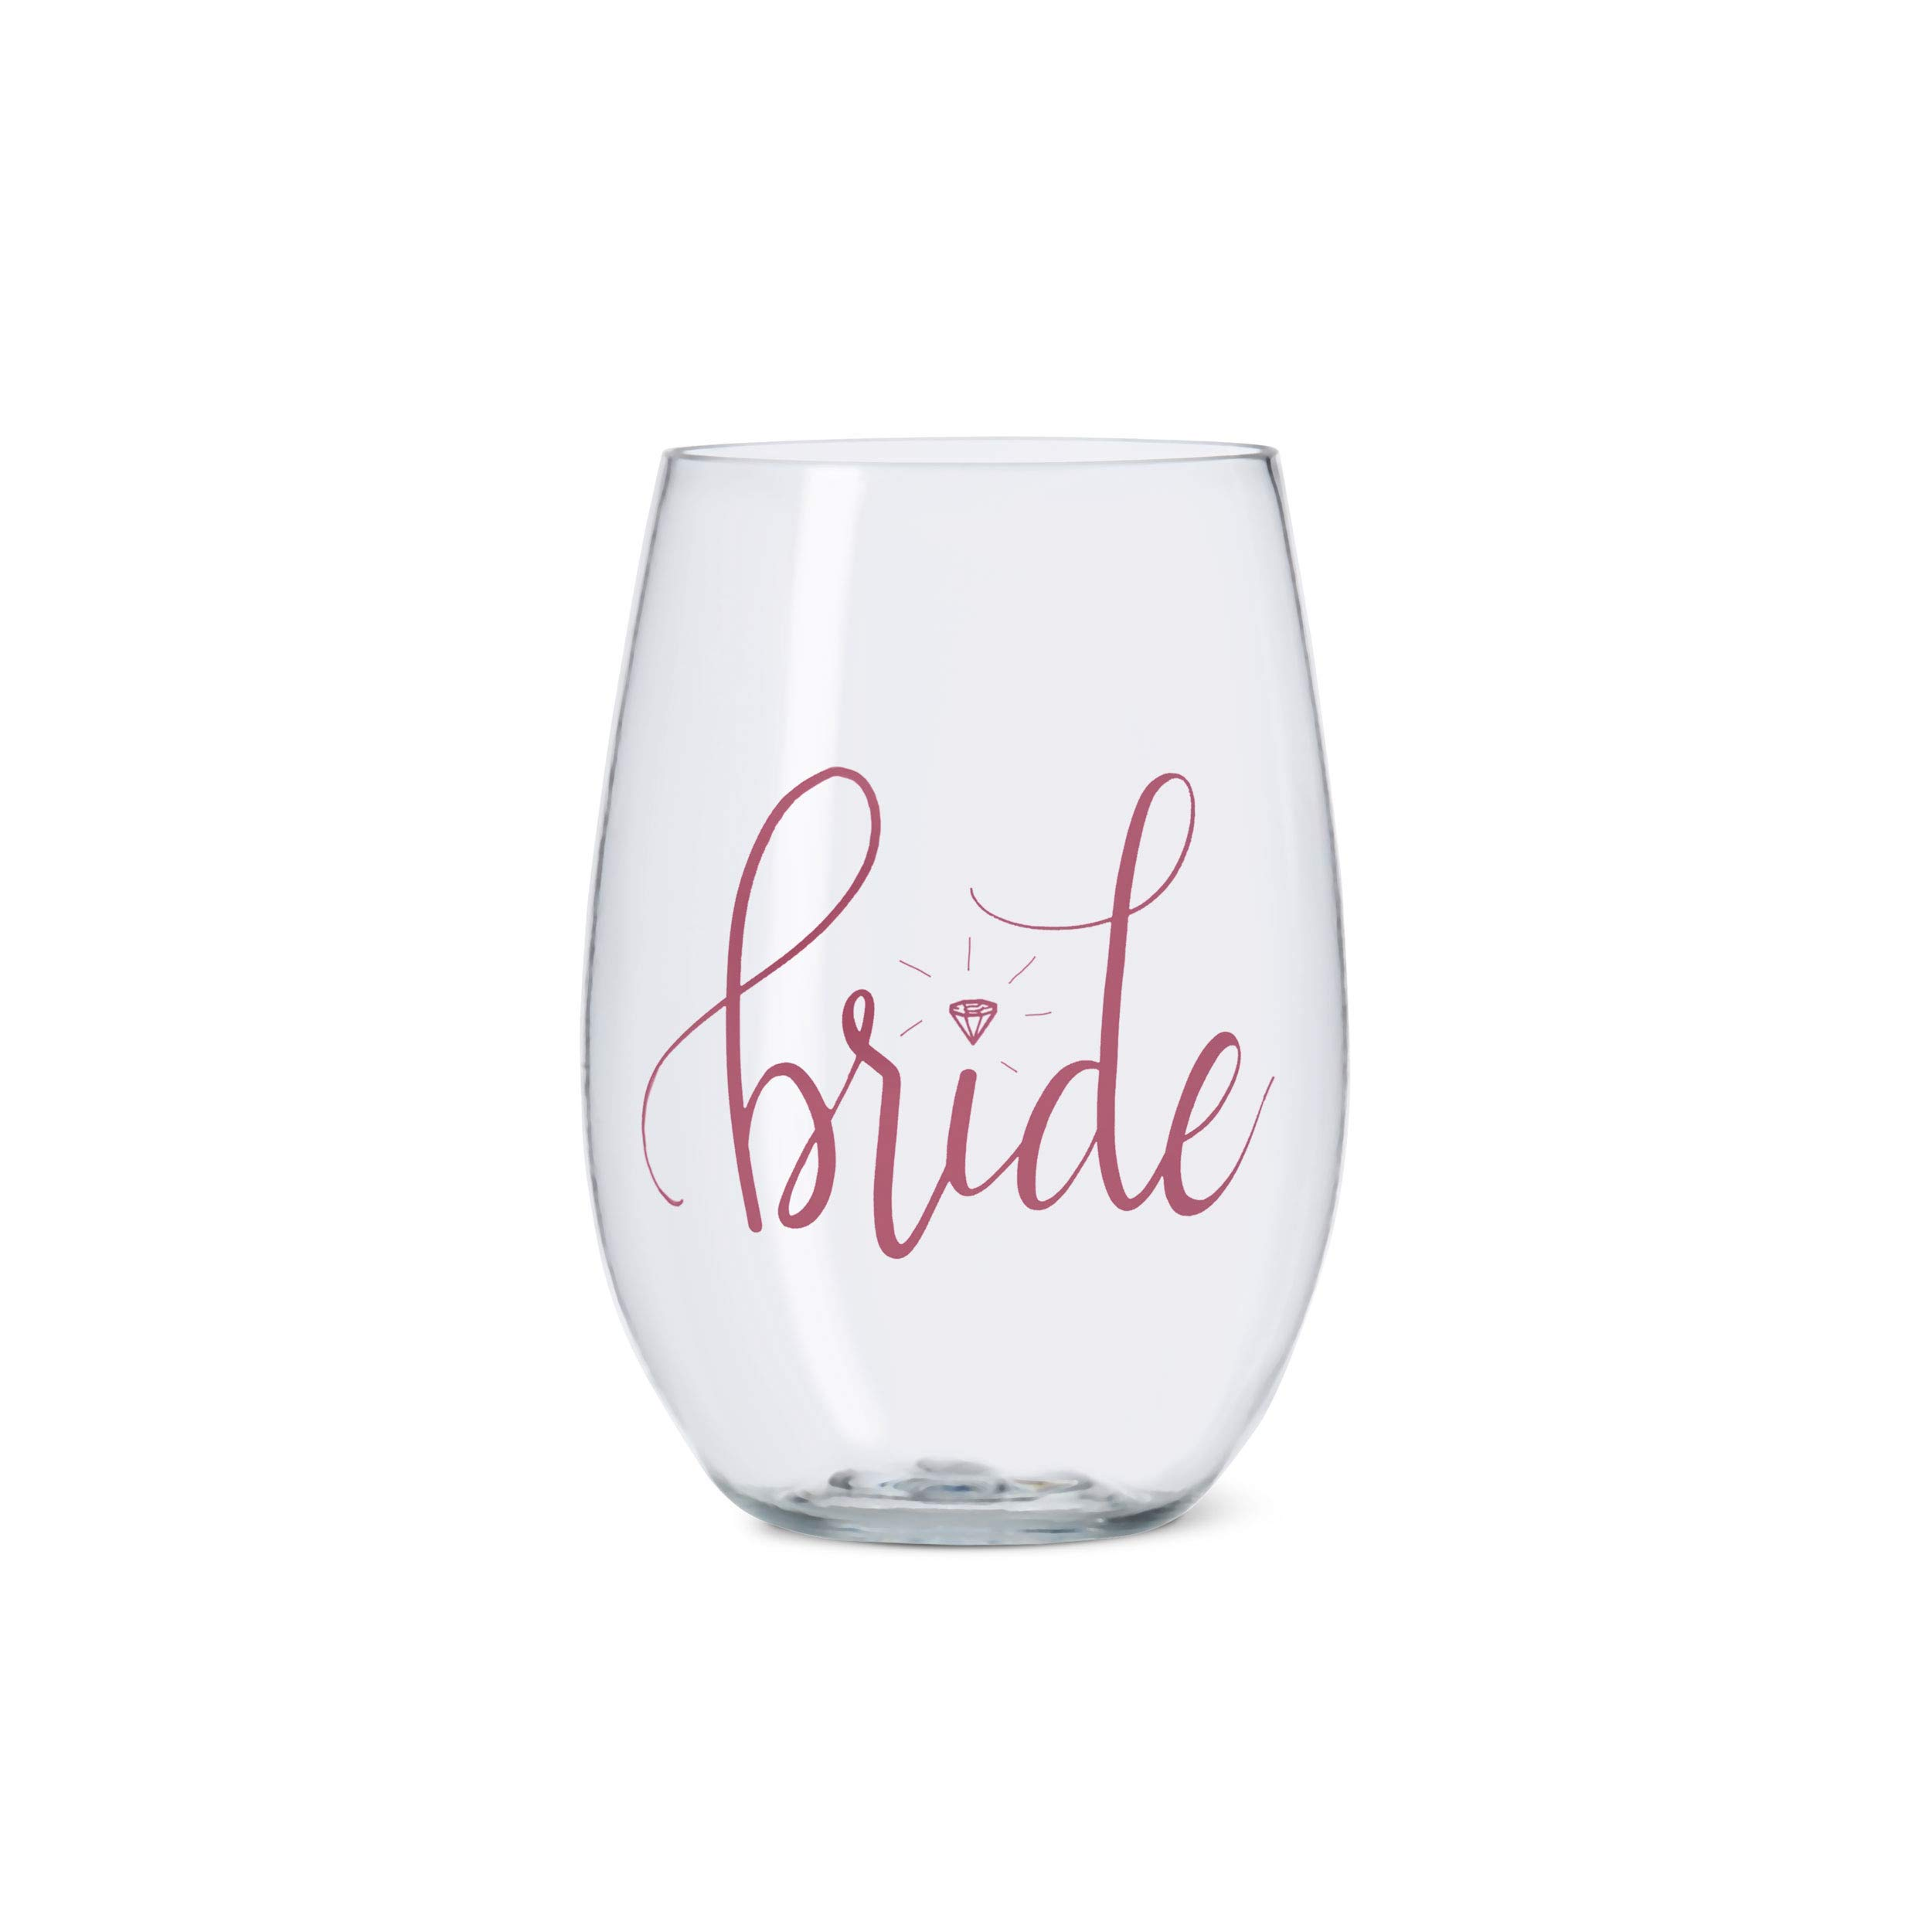 11 Piece Set of Pink Bride Tribe Durable Plastic Stemless Wine Glasses for Bachelorette Parties, Weddings and Bridal Showers by Samantha Margaret (Image #4)